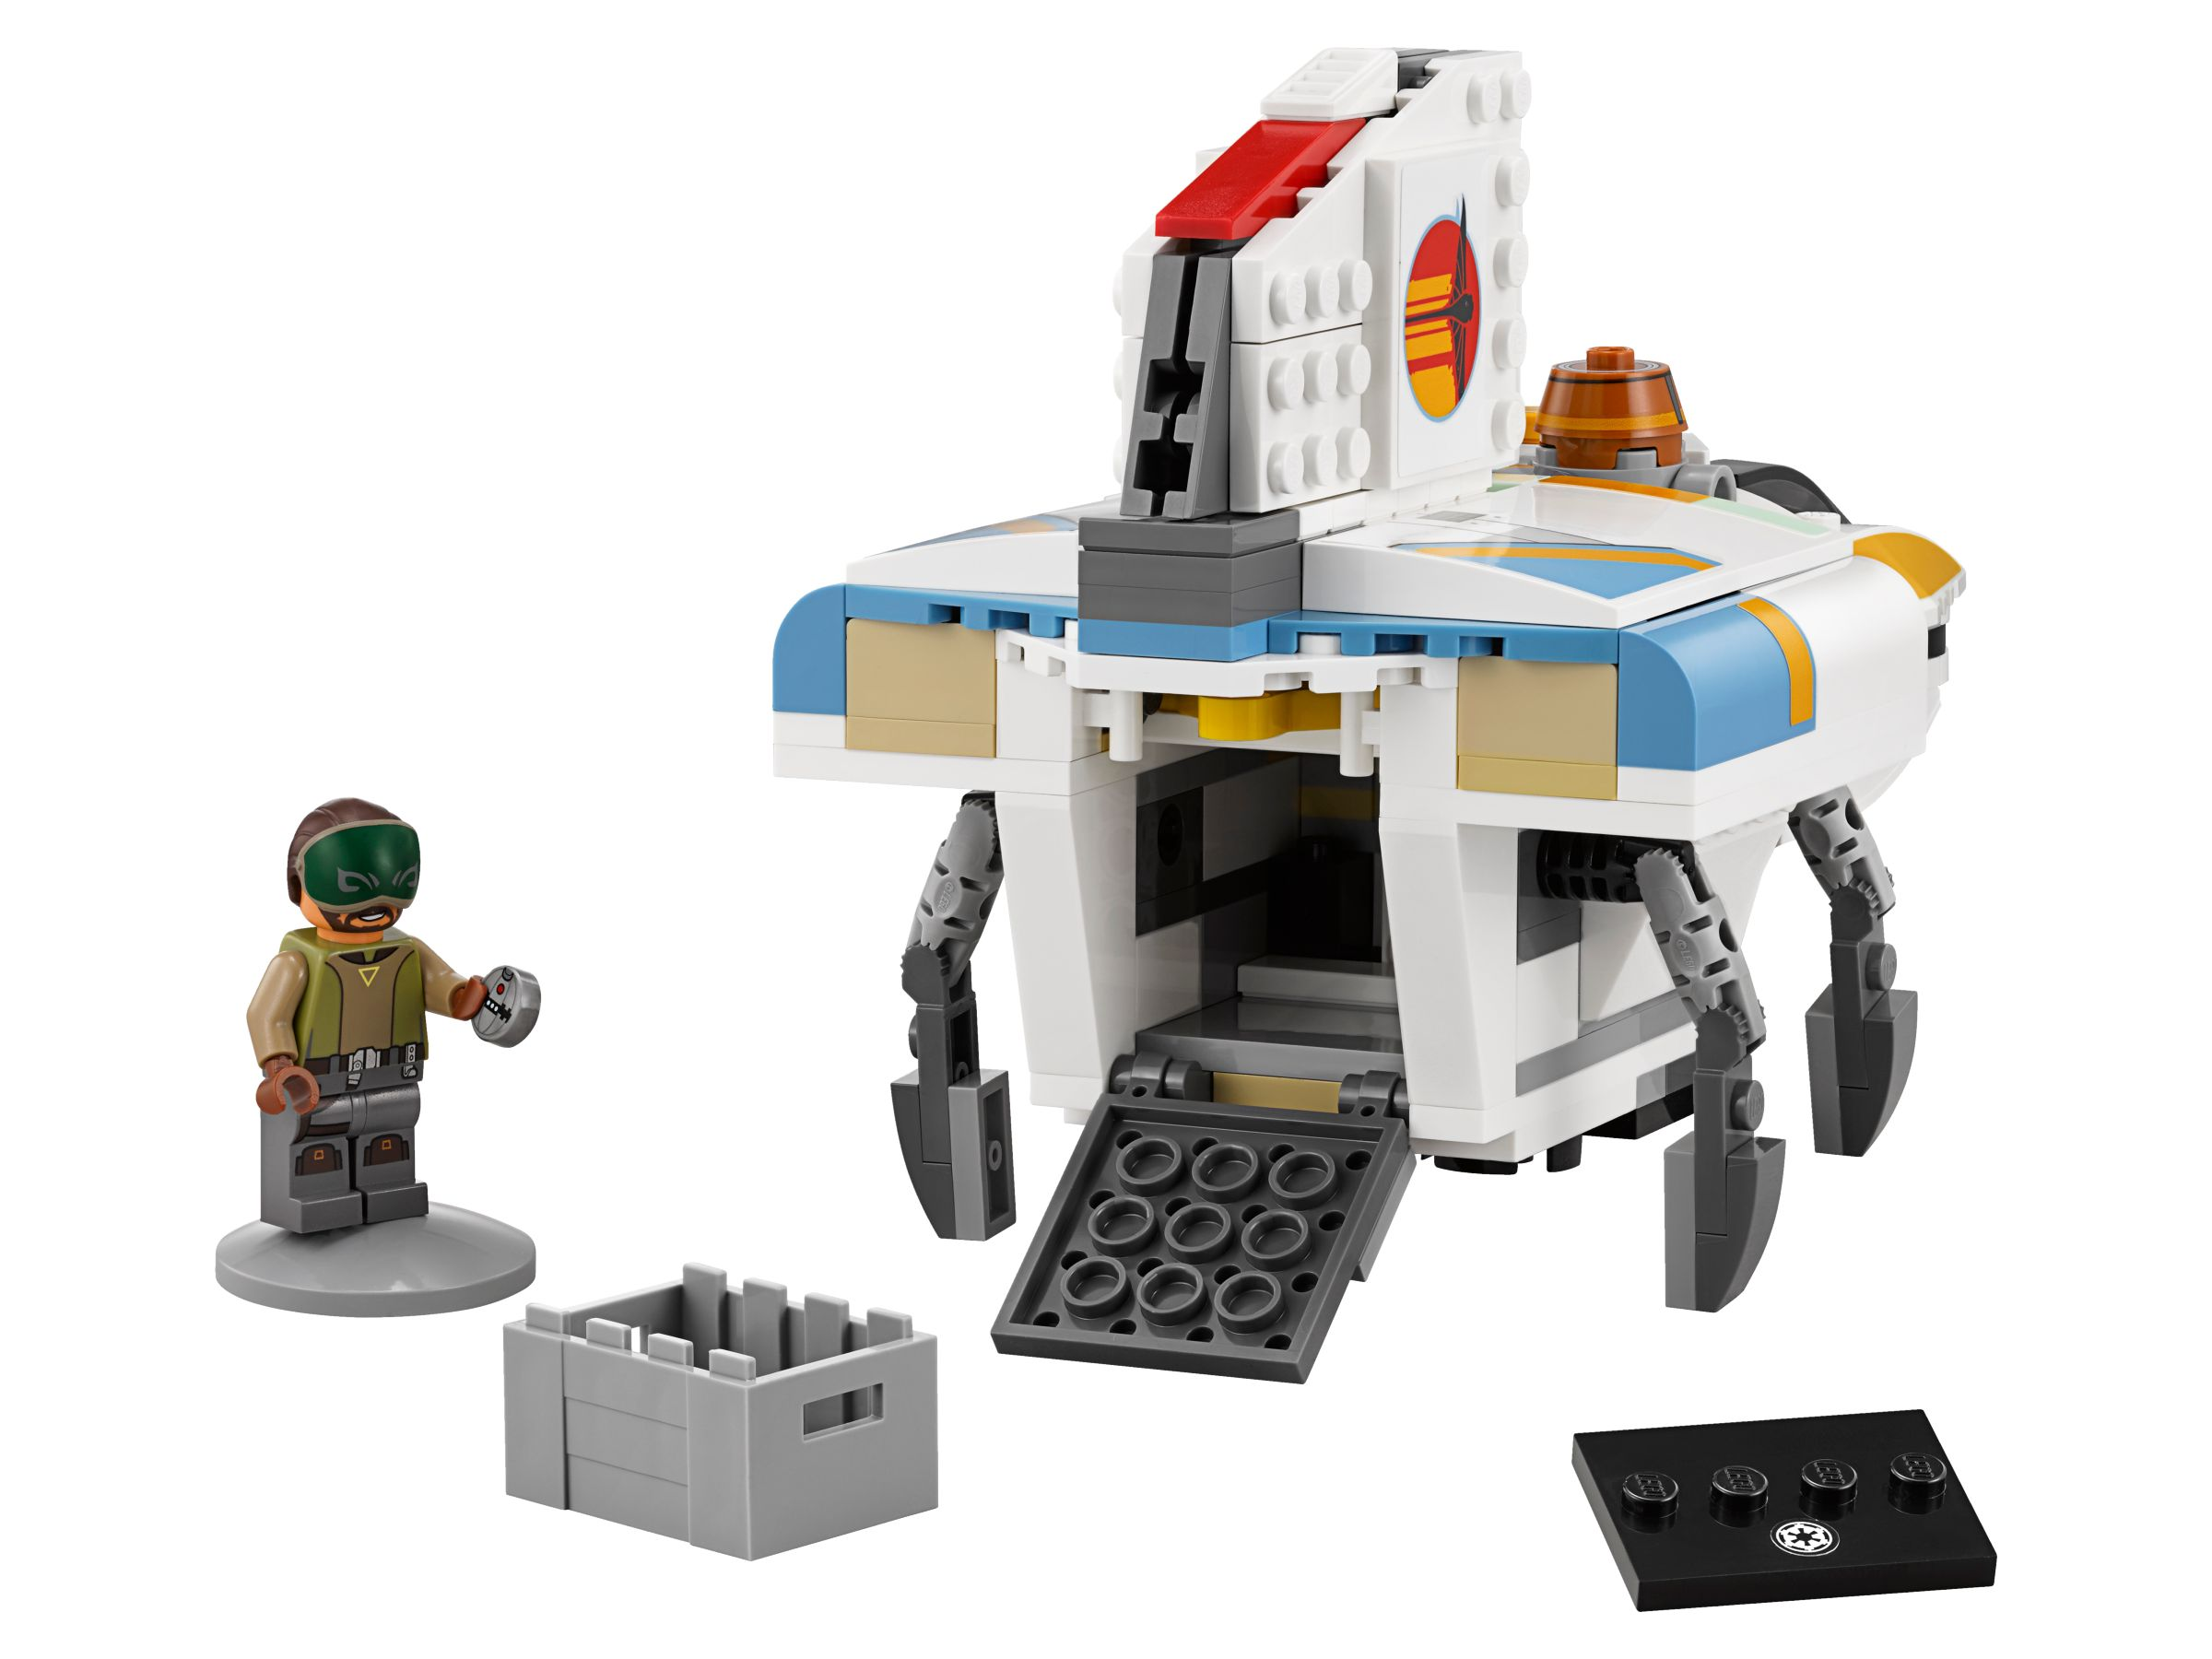 LEGO Star Wars 75170 The Phantom LEGO_75170_alt3.jpg